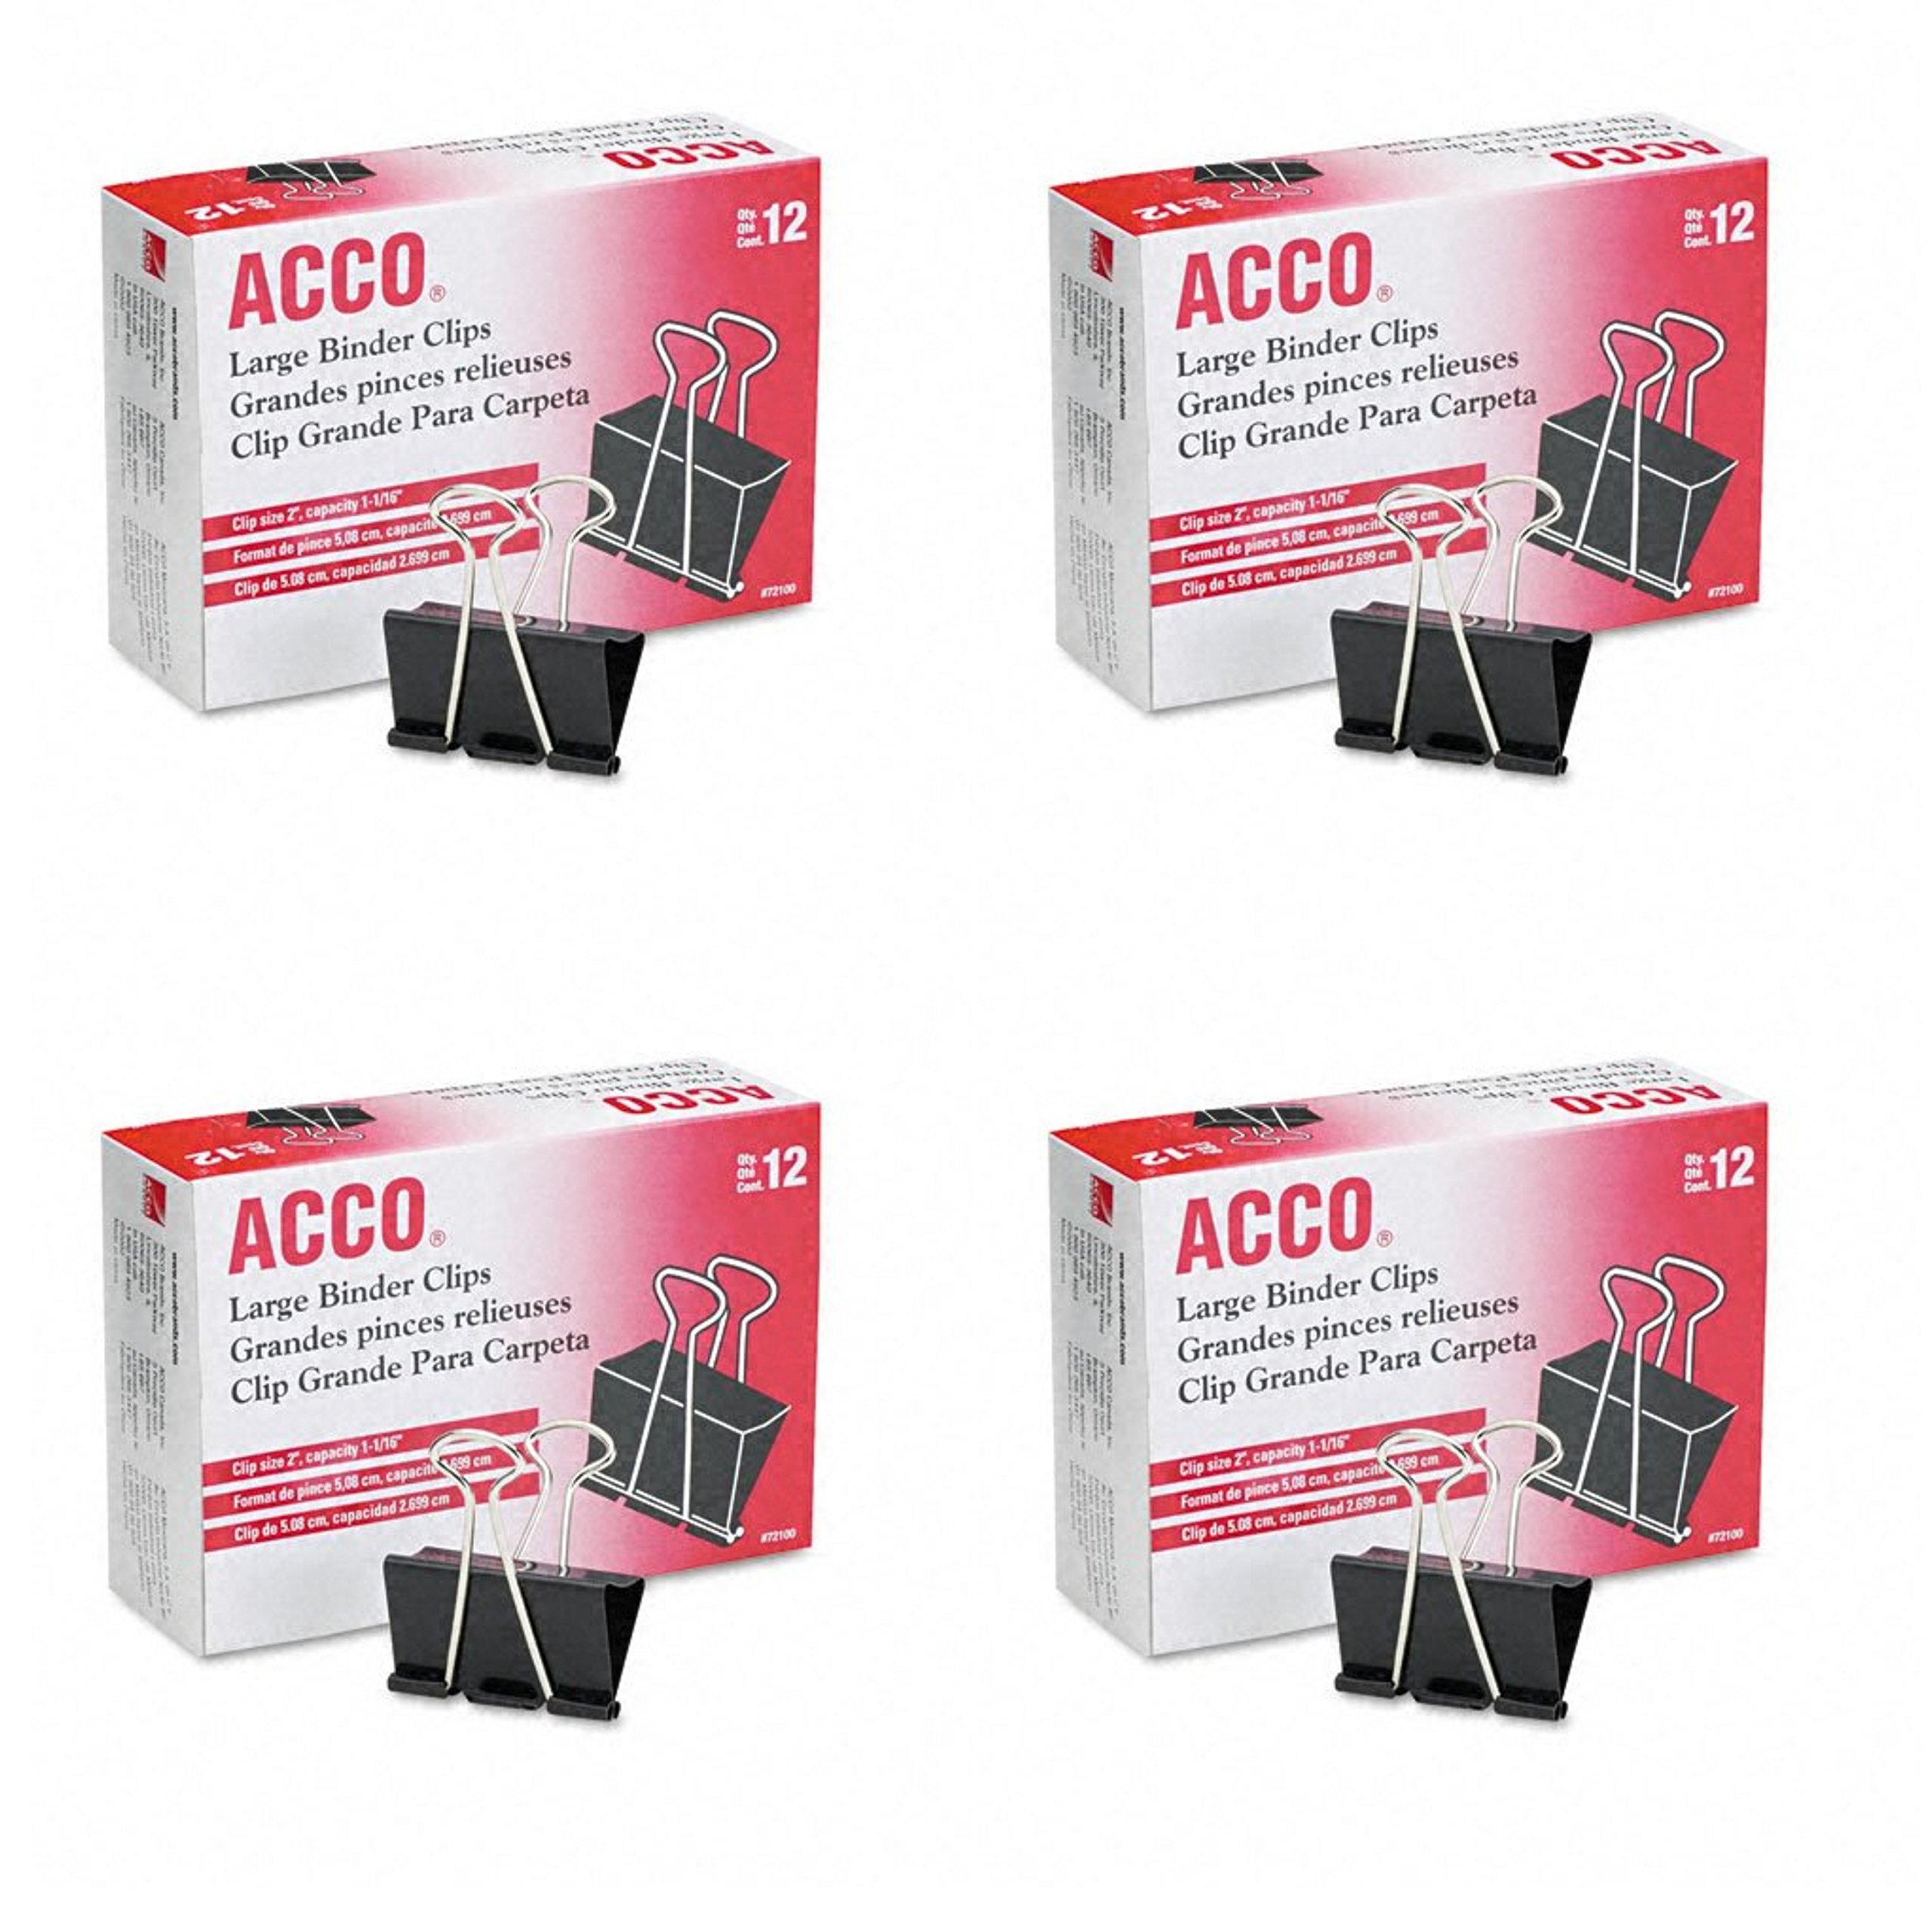 ACCO Binder Clips, Large, 4 Boxes, 12 Clips/Box (A7072100B-AZ)